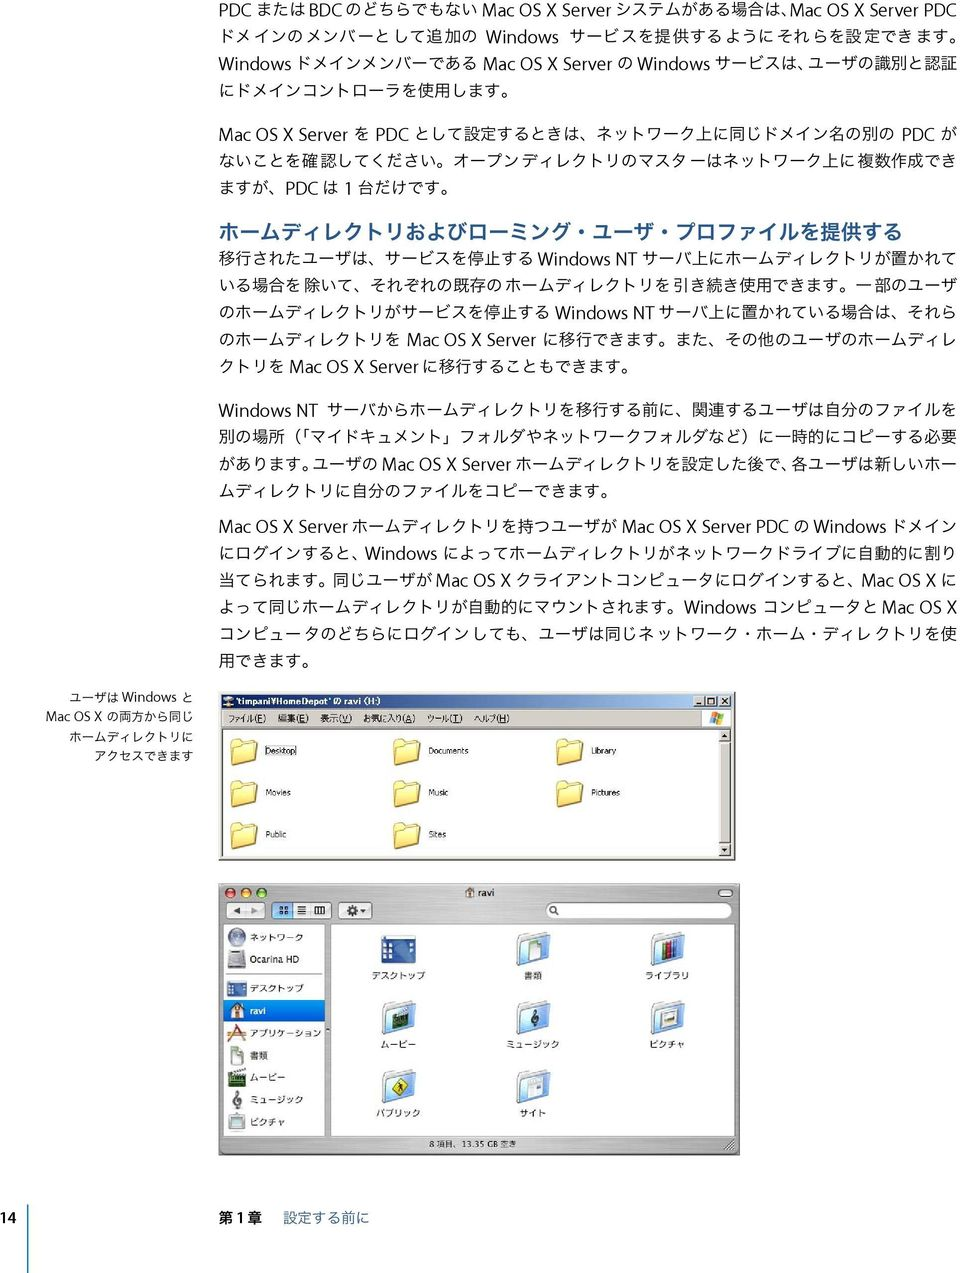 Mac OS X Server Windows NT Mac OS X Server Mac OS X Server Mac OS X Server